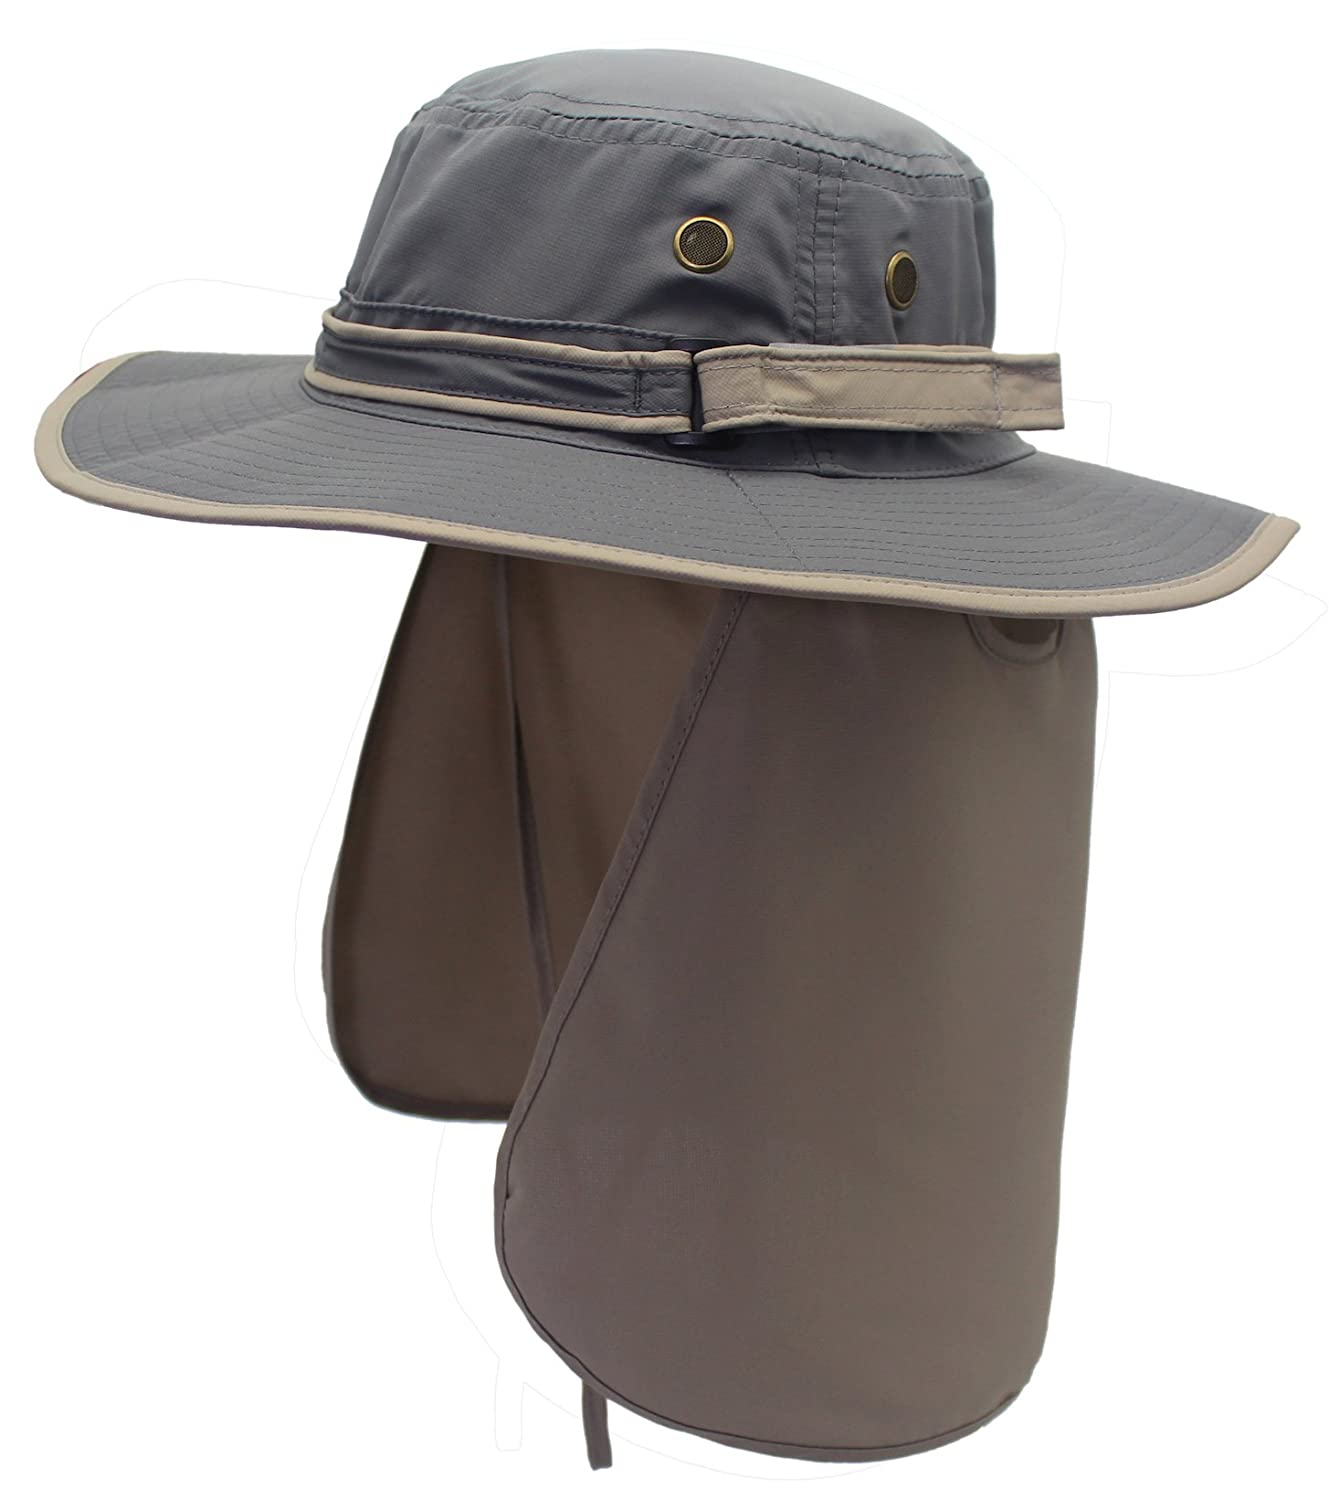 Home Prefer Unisex Quick Drying UV Protection Outdoor Sun Hat with Flap Neck Cover HP0174-GB